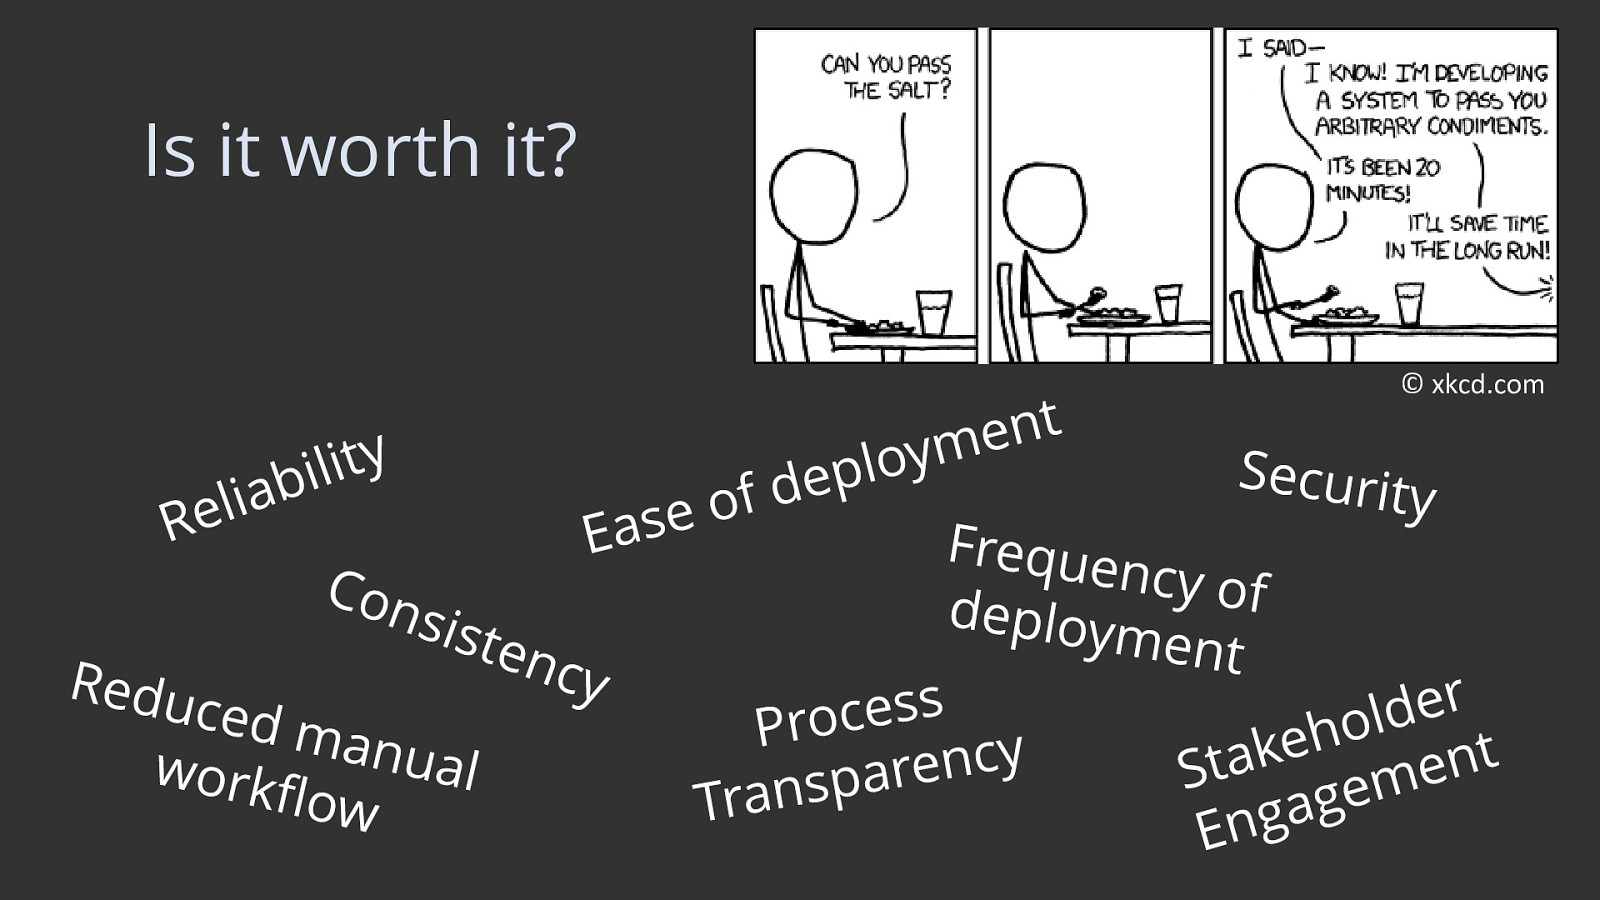 Five hops to DevOps – Changing the culture around software